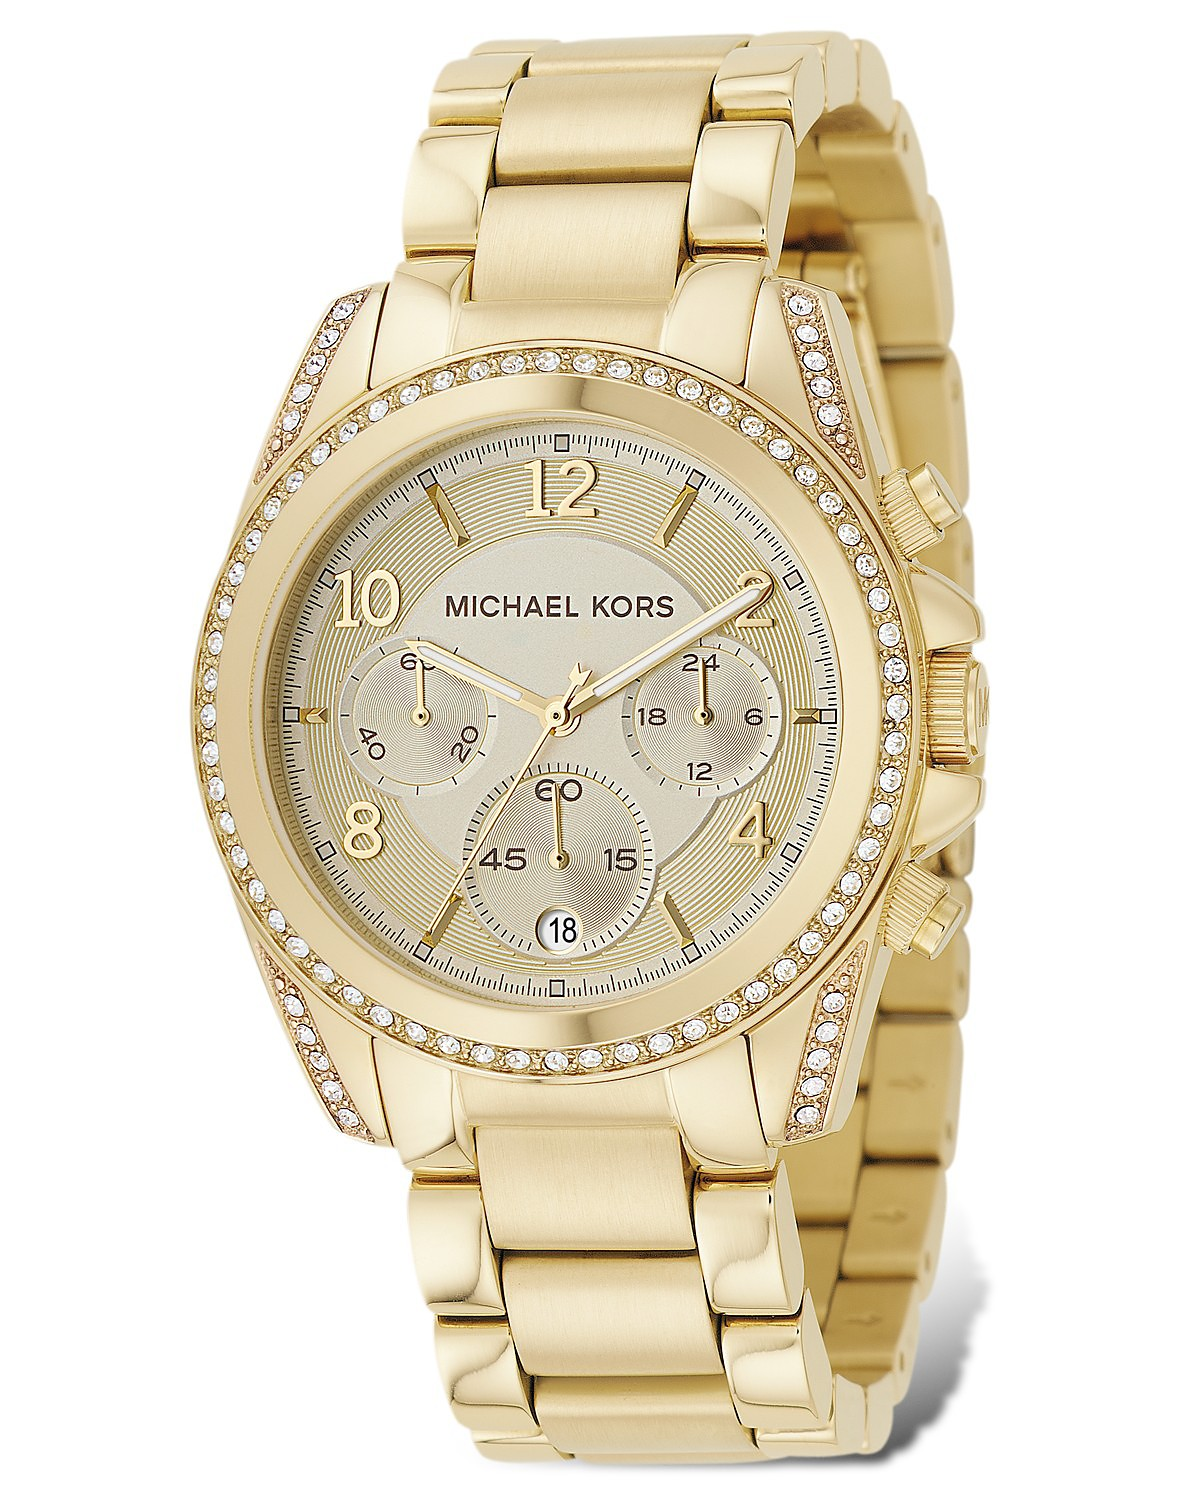 Michael Kors Gold Plated Stainless Steel Chronograph Watch with Clear Stones on Bezel, 39 mm | Bloomingdale's